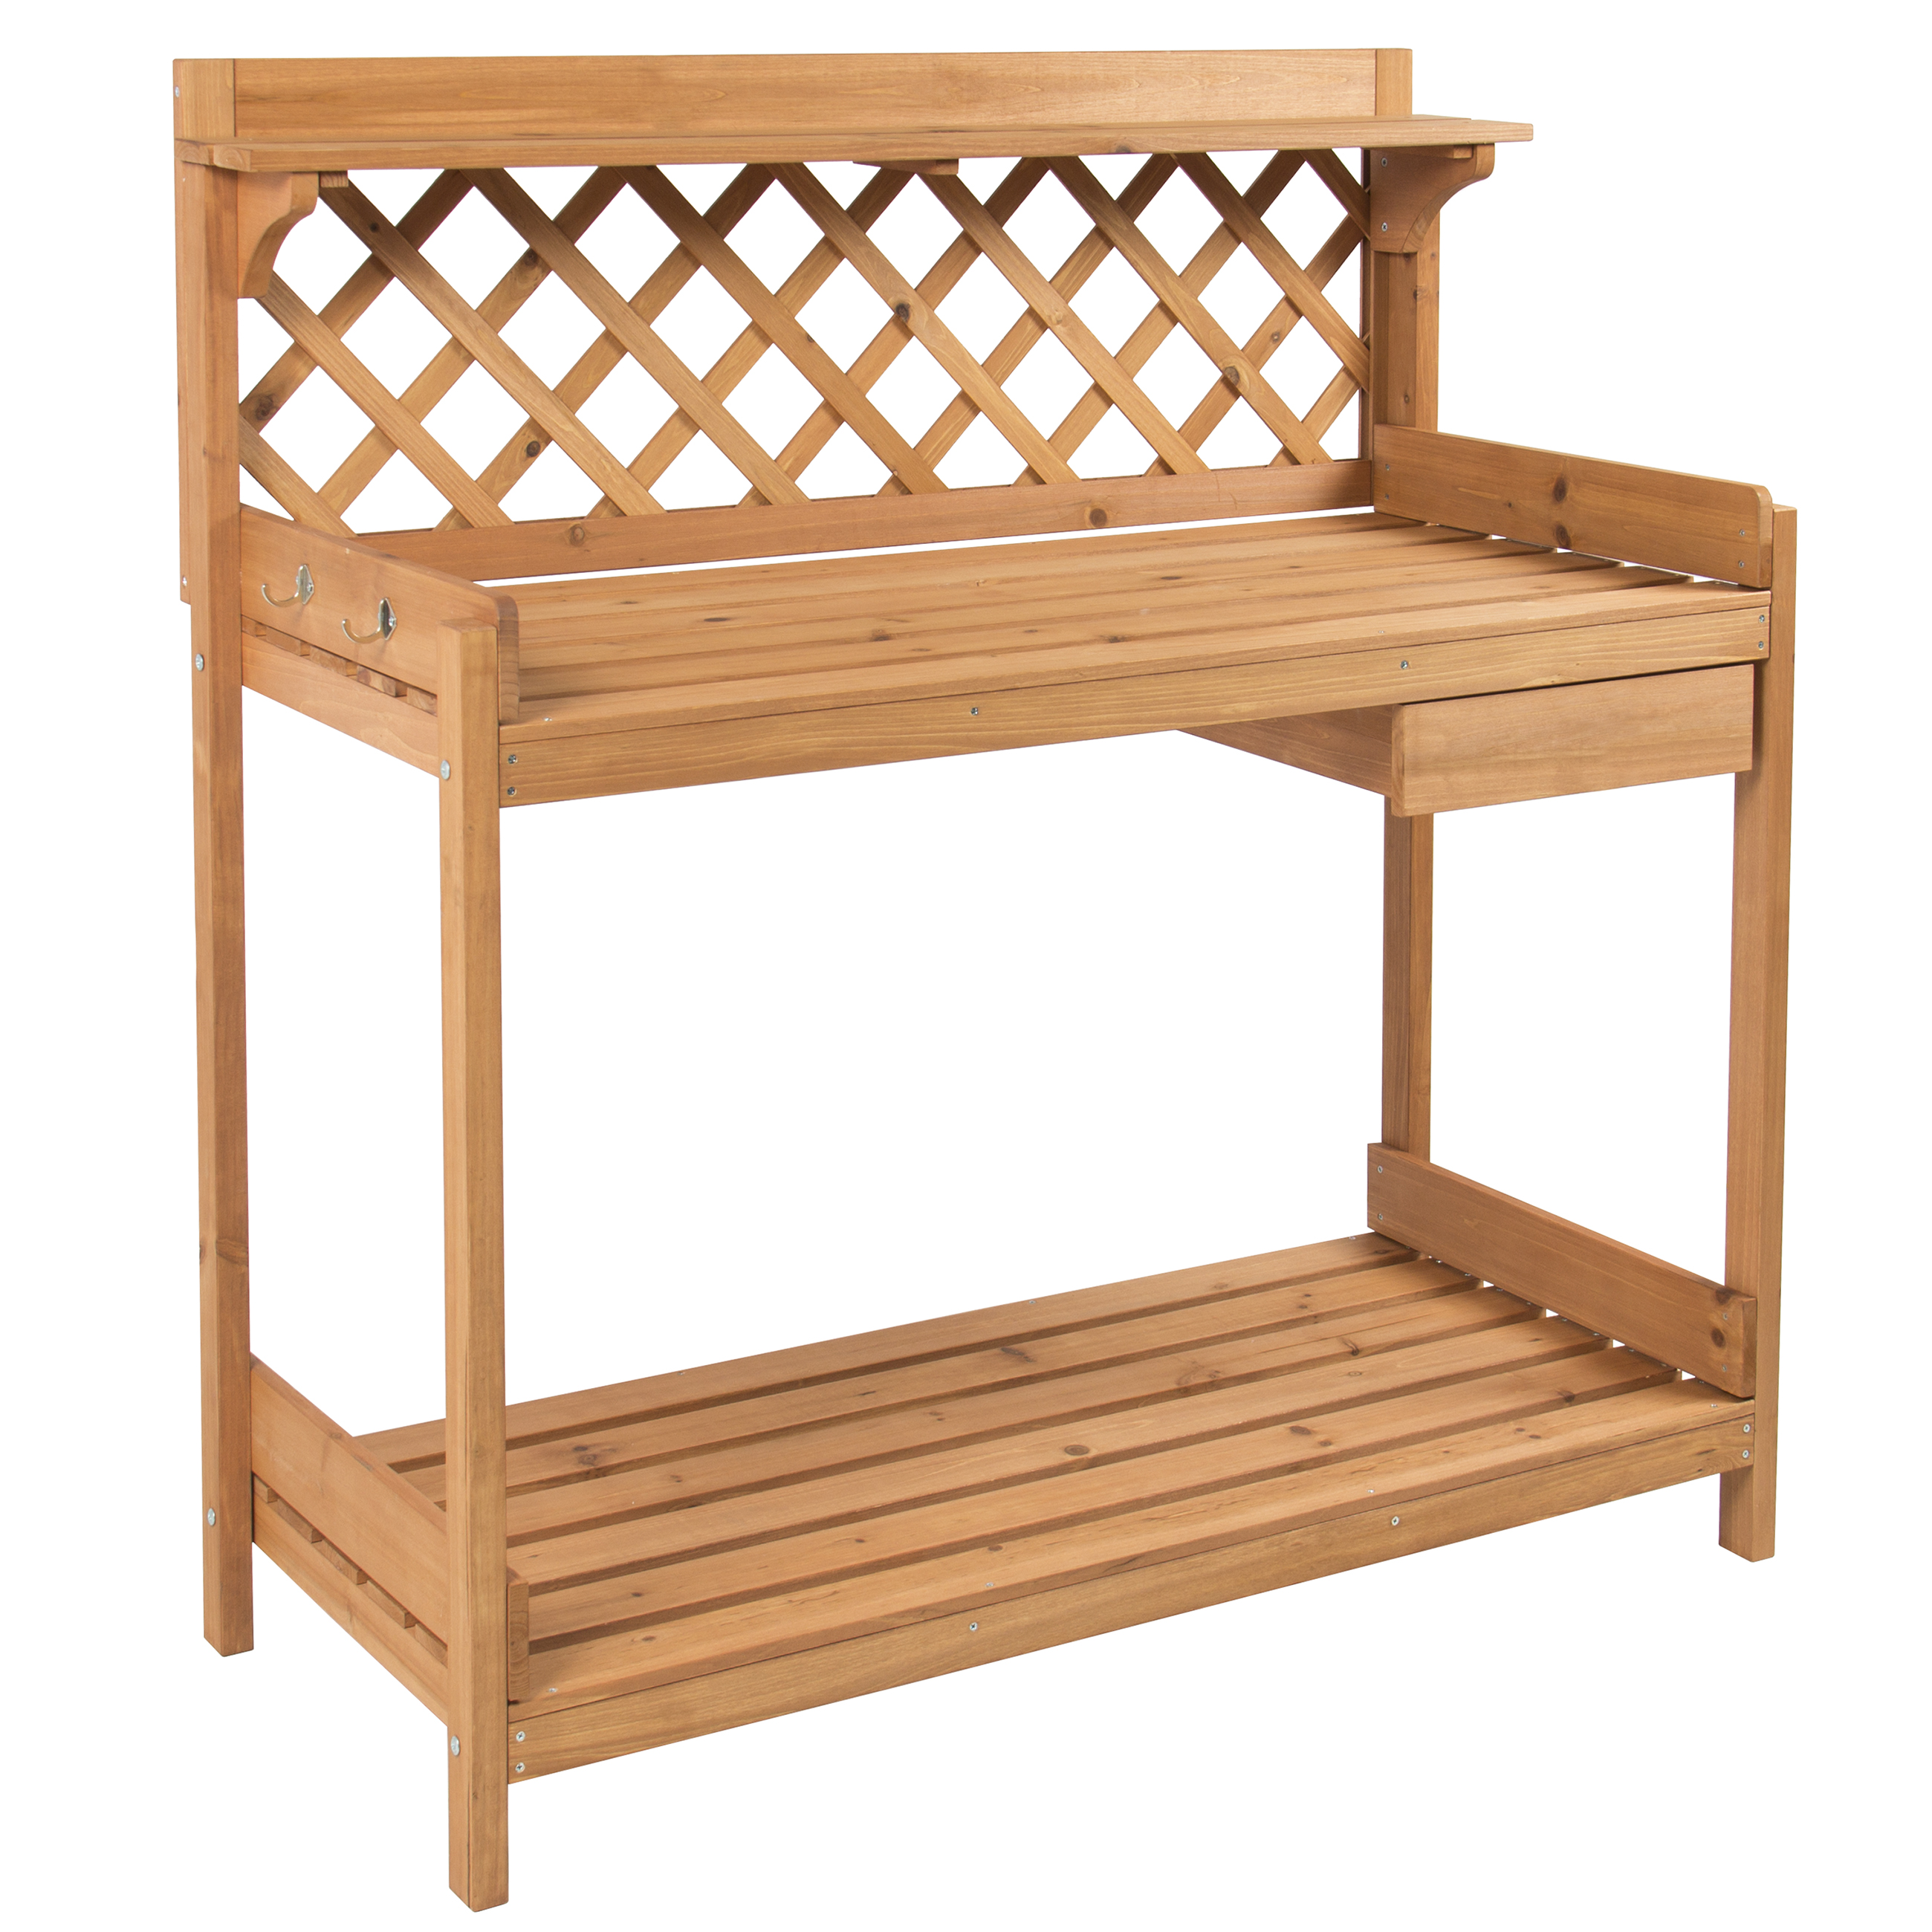 Wondrous Best Choice Products Fir Wood Potting Bench With Hooks Creativecarmelina Interior Chair Design Creativecarmelinacom